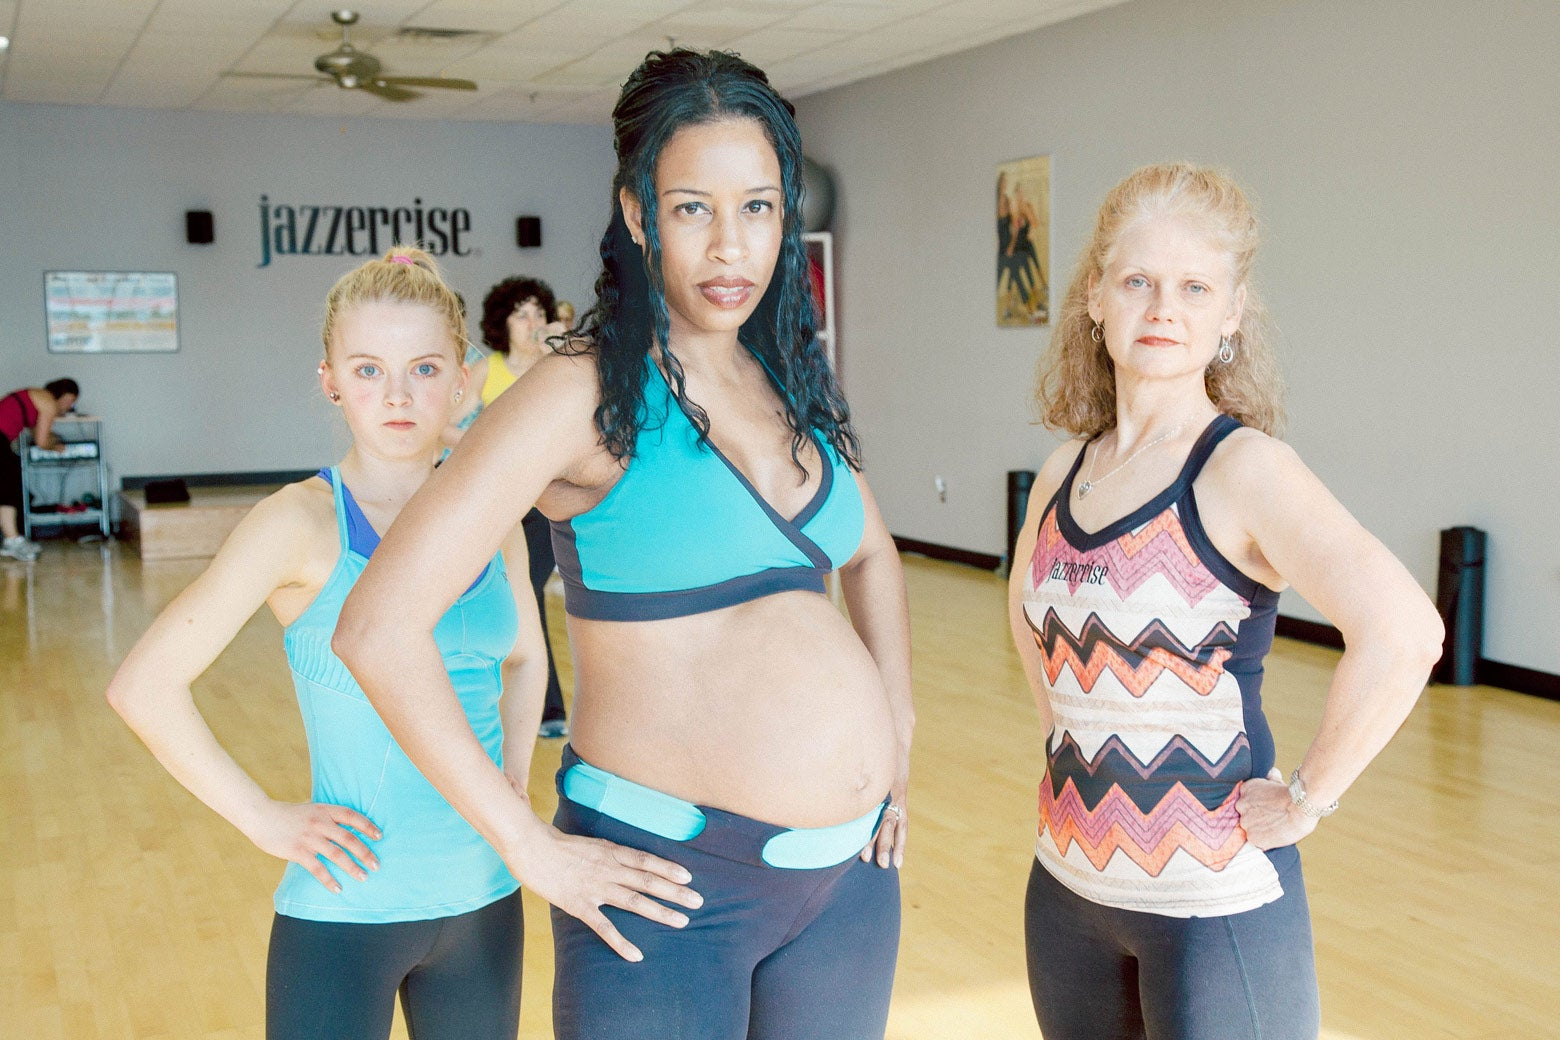 Alicia with two other women in a Jazzercise studio.